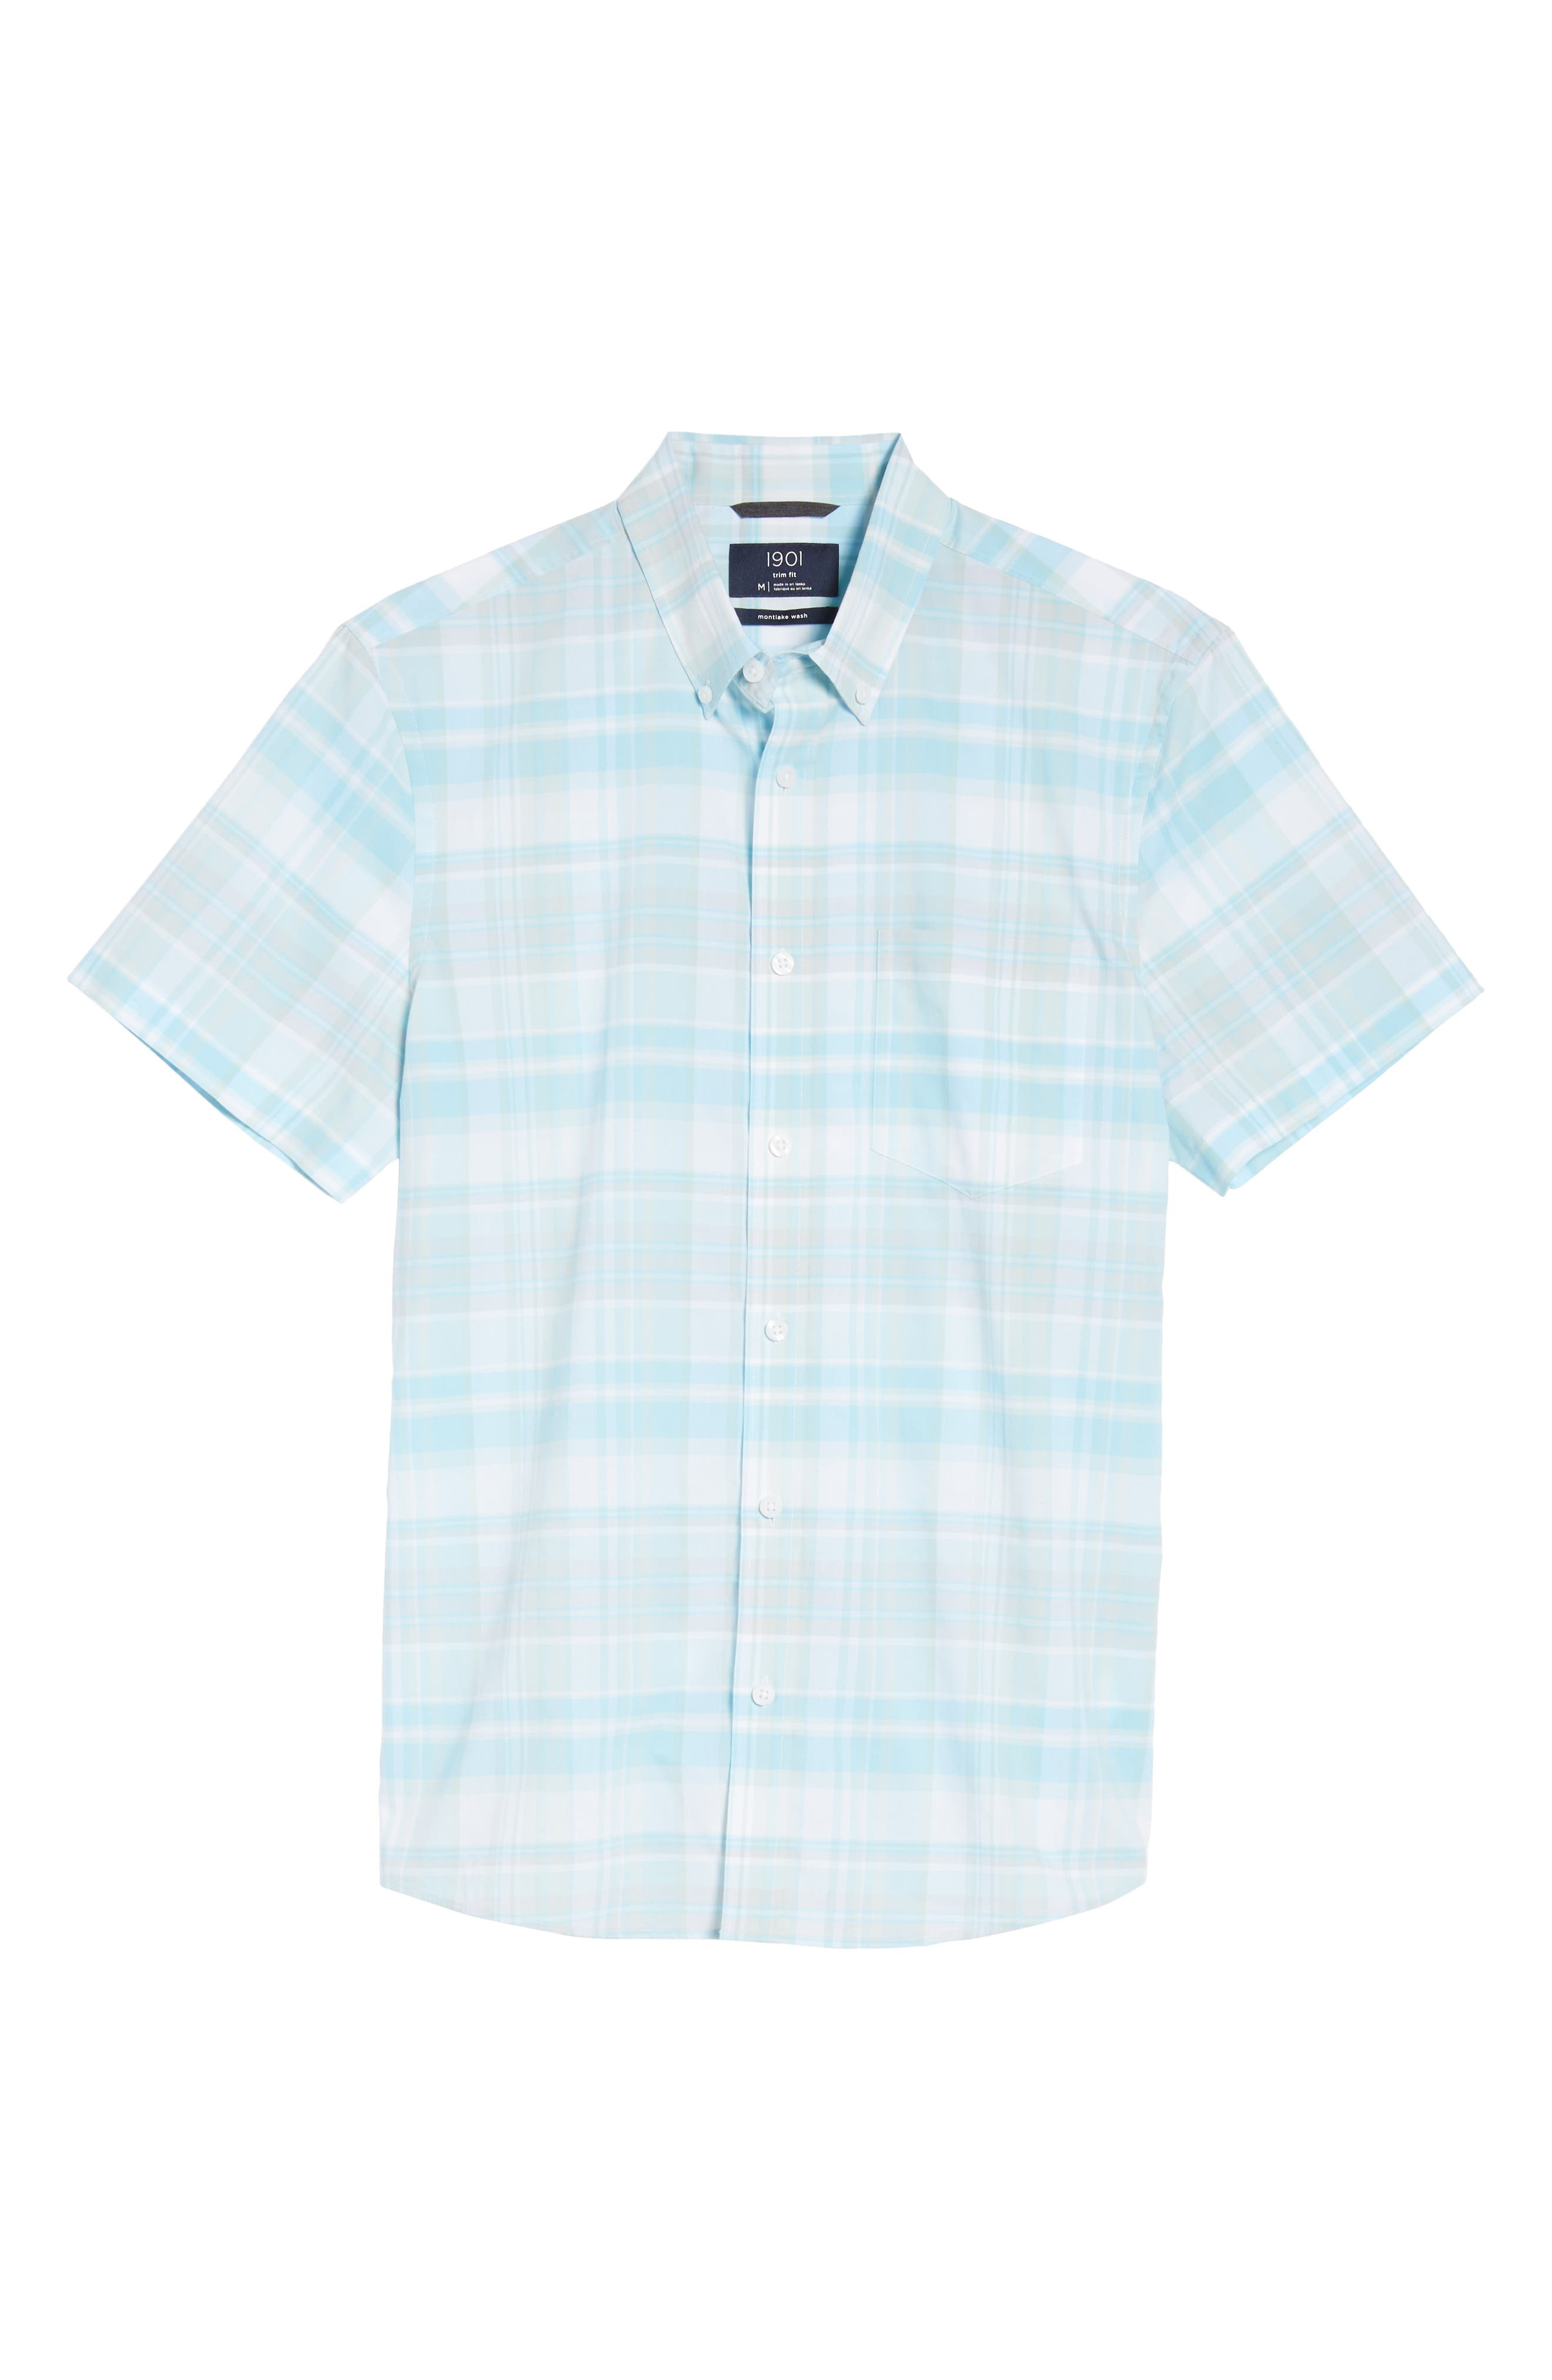 Trim Fit Plaid Sport Shirt,                             Alternate thumbnail 6, color,                             450